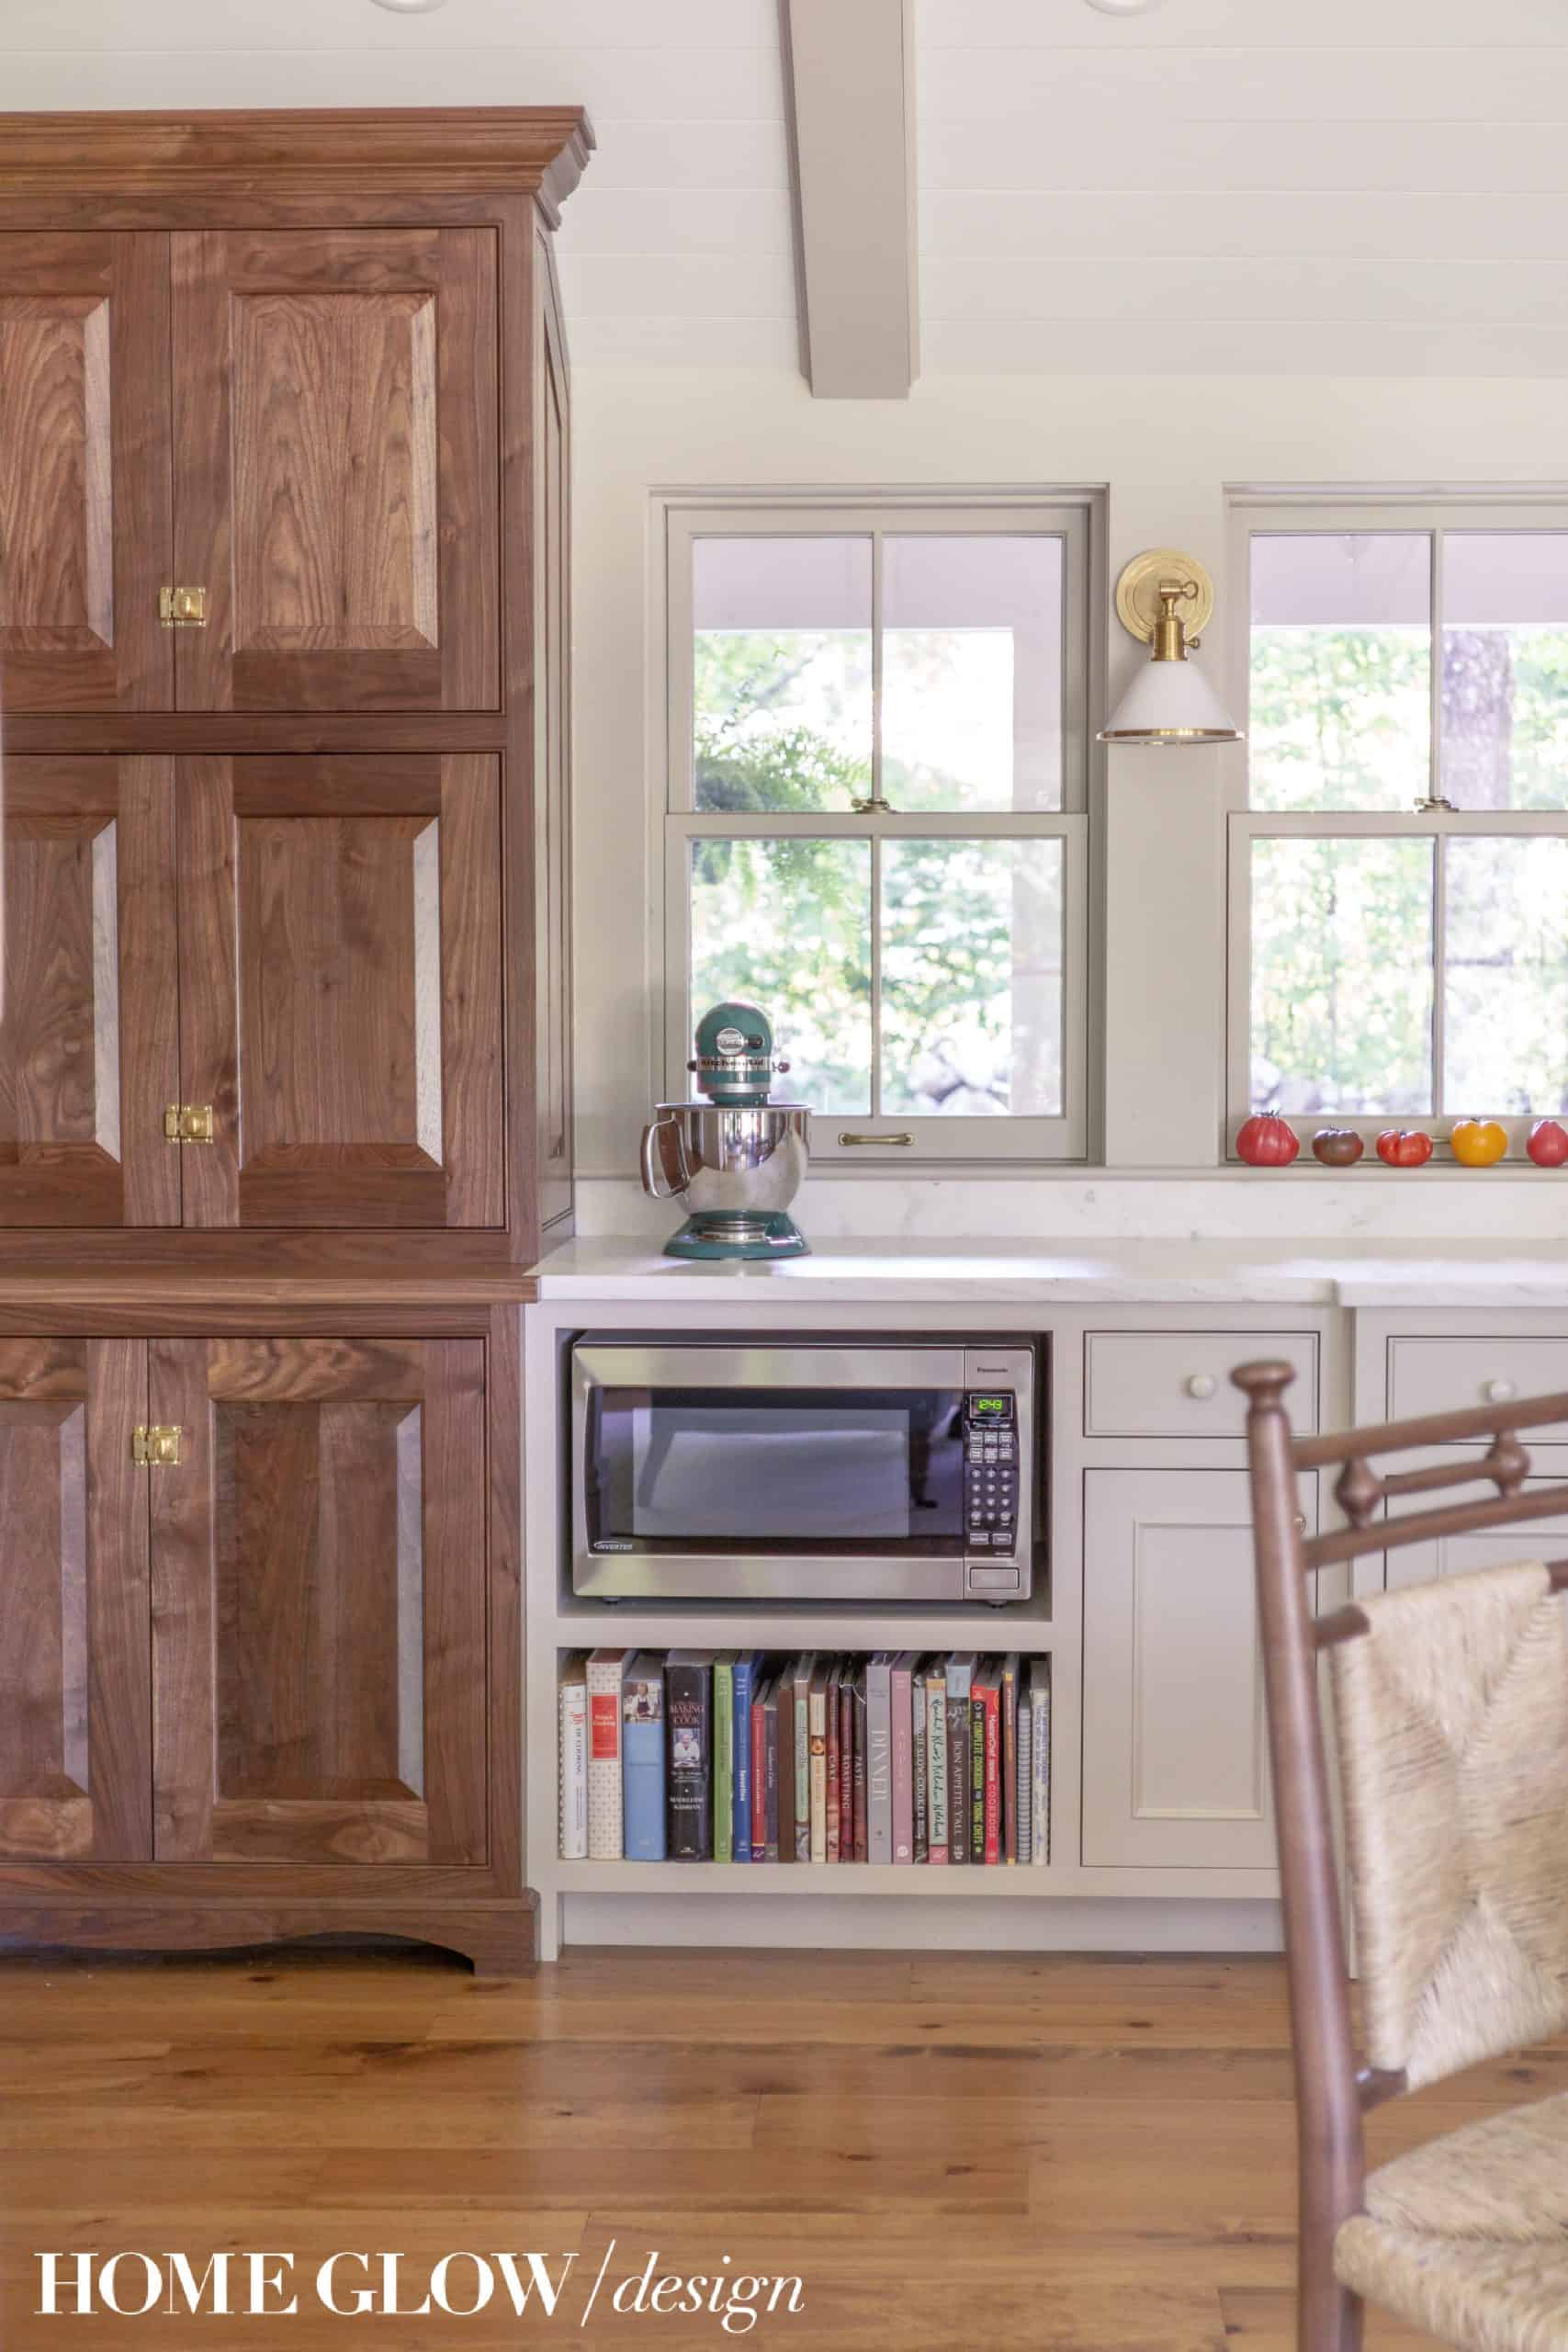 Remuddle Remodel REVEAL! -- The Unfitted Kitchen/Converted Porch